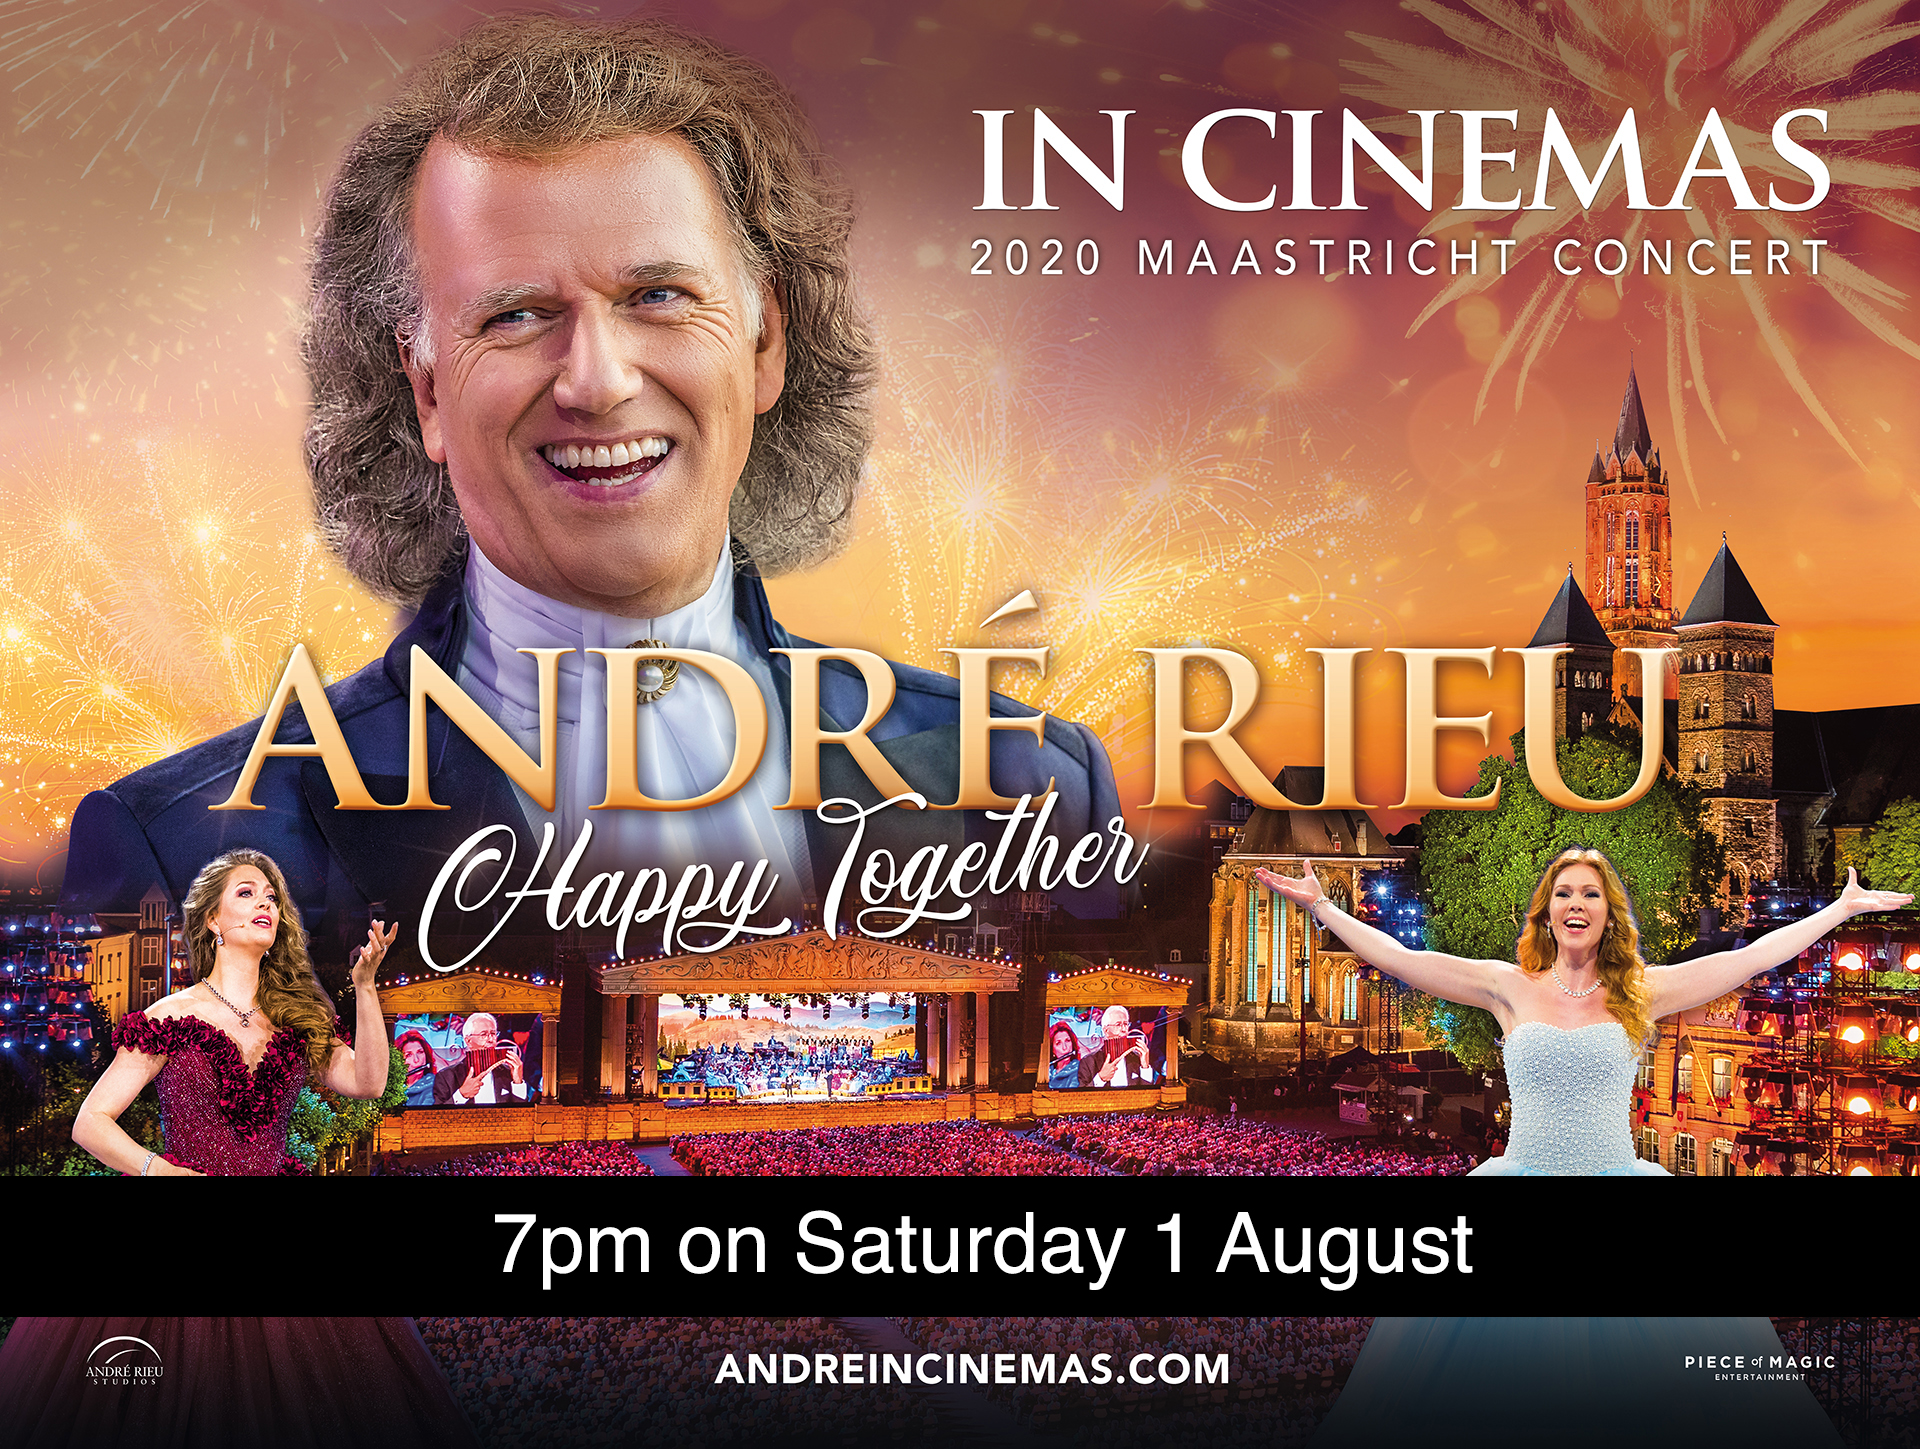 André Rieu 2020 Maastricht Concert: Happy Together